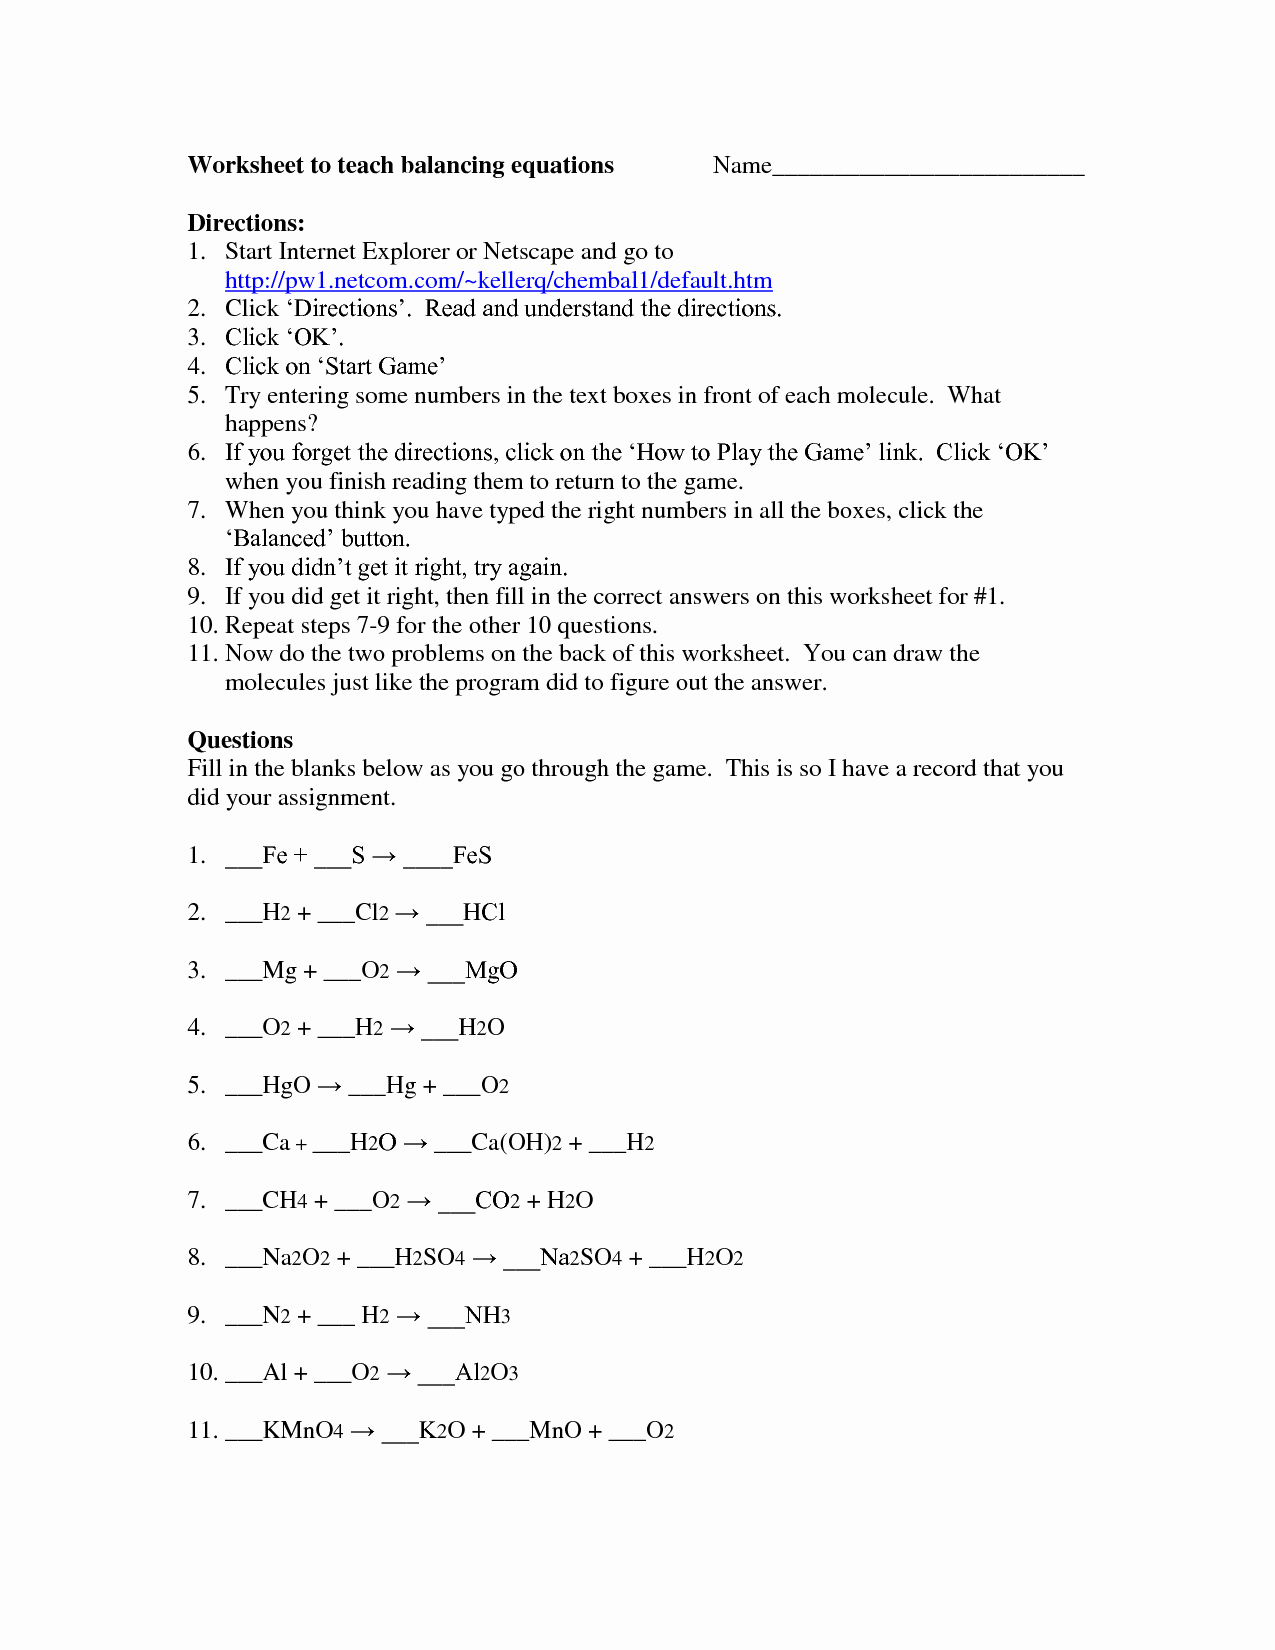 Balancing Act Worksheet Answer Key Elegant Balancing Equations 8th Grade Worksheet Tessshebaylo